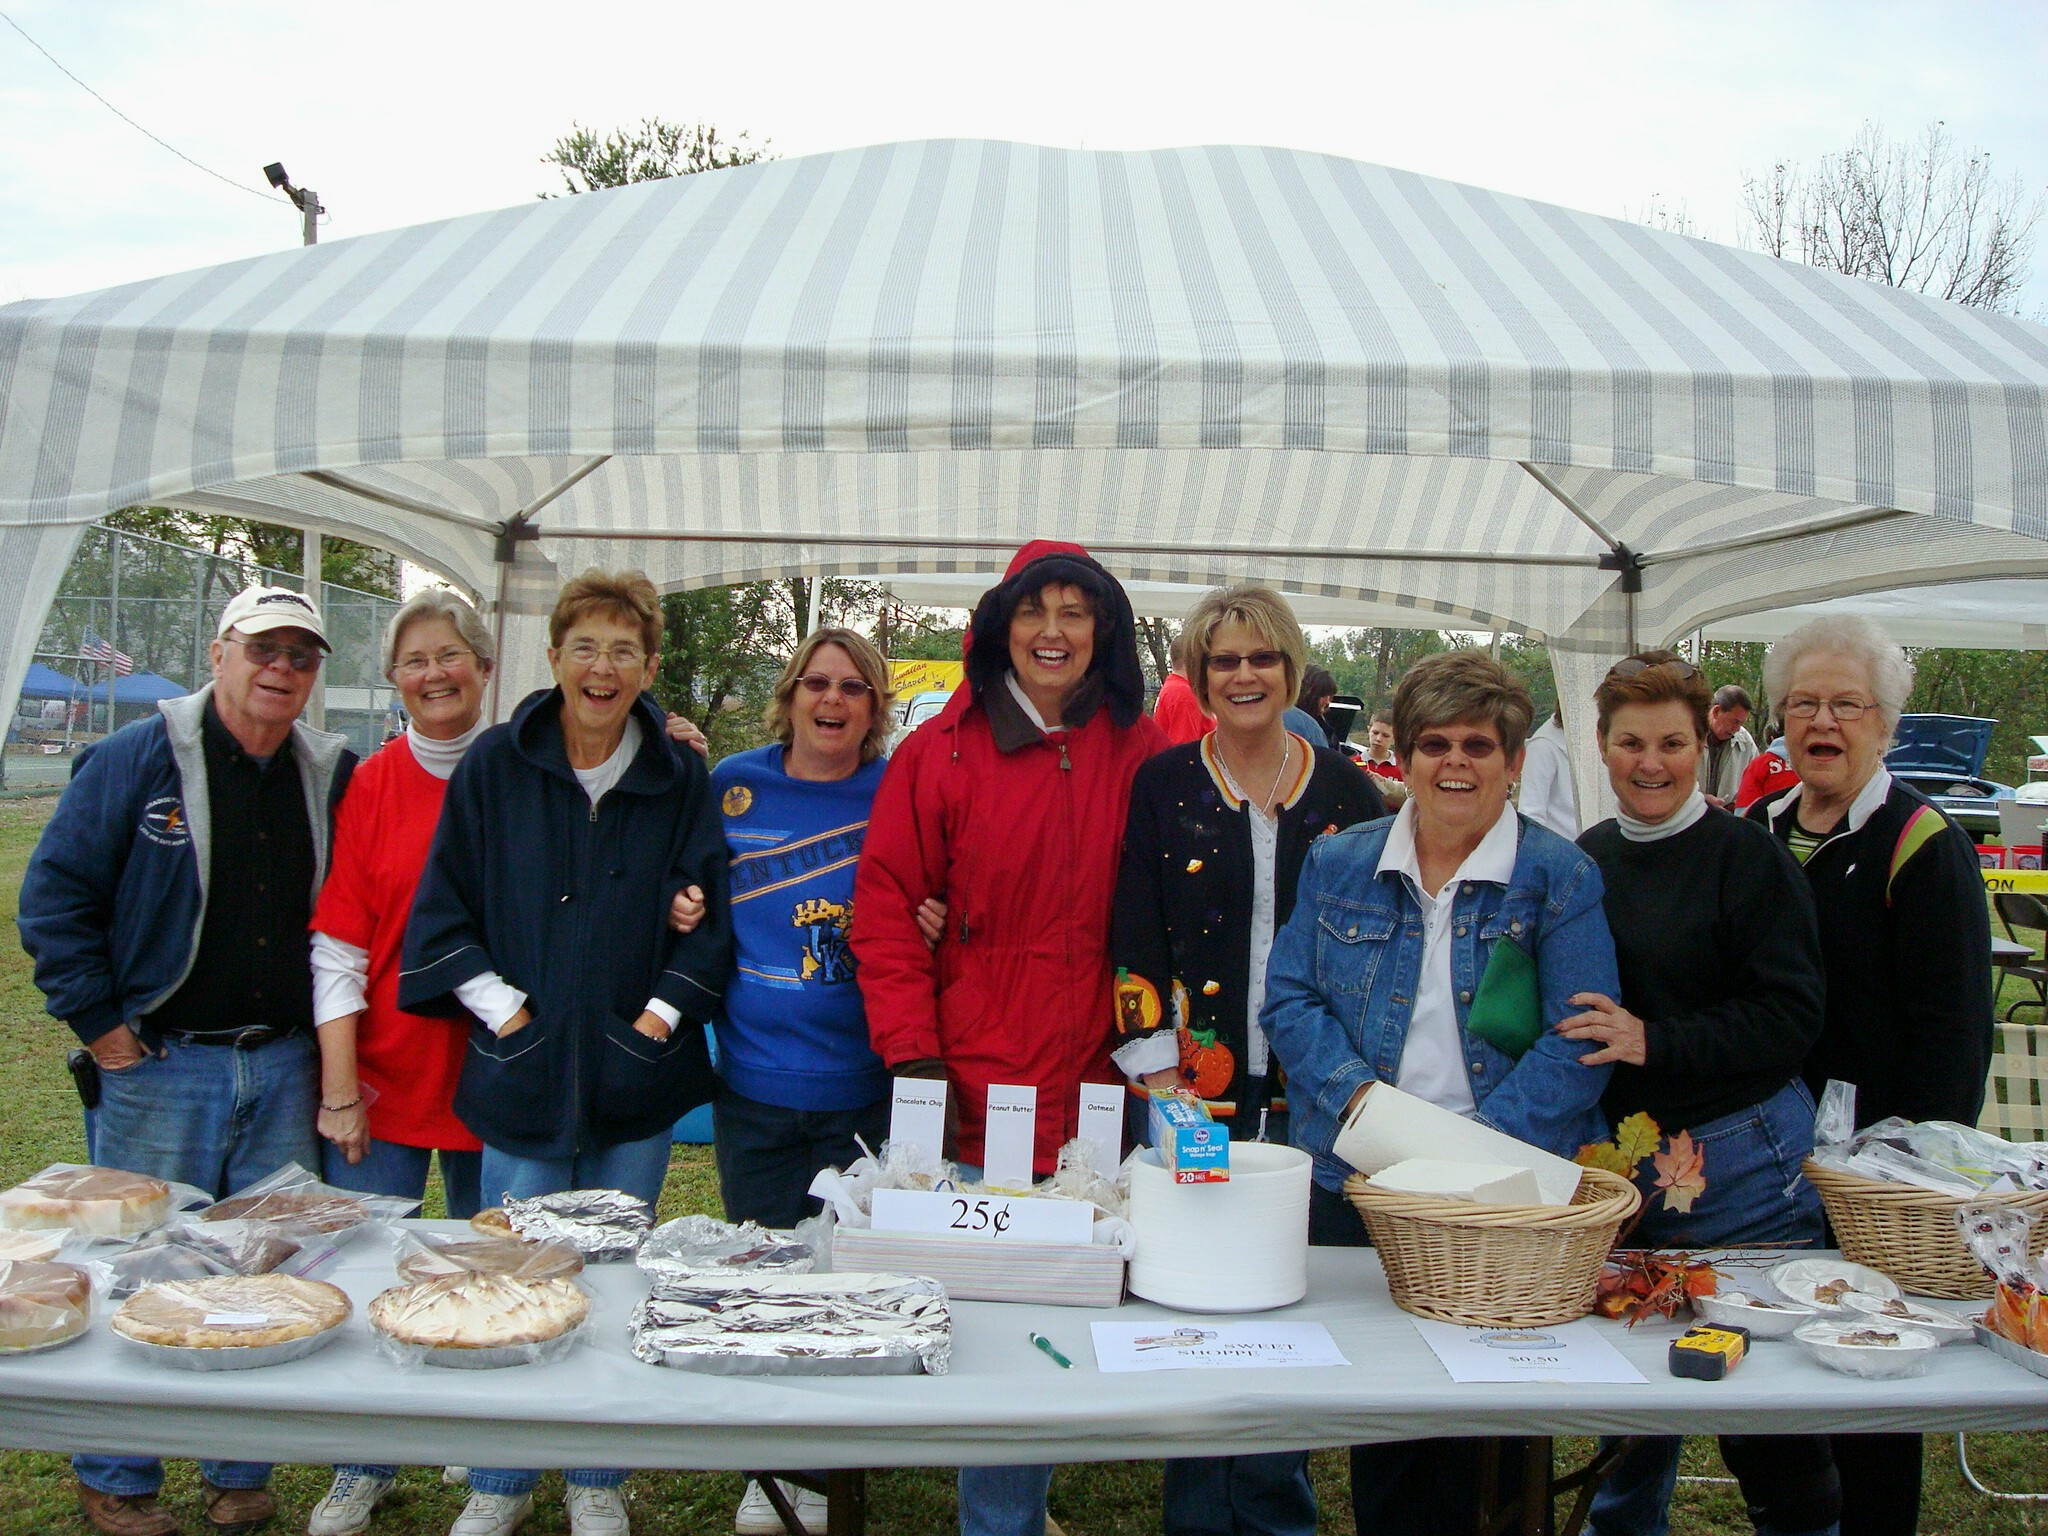 Some members of the Livermore Woman's Club at the Livermore Riverfest